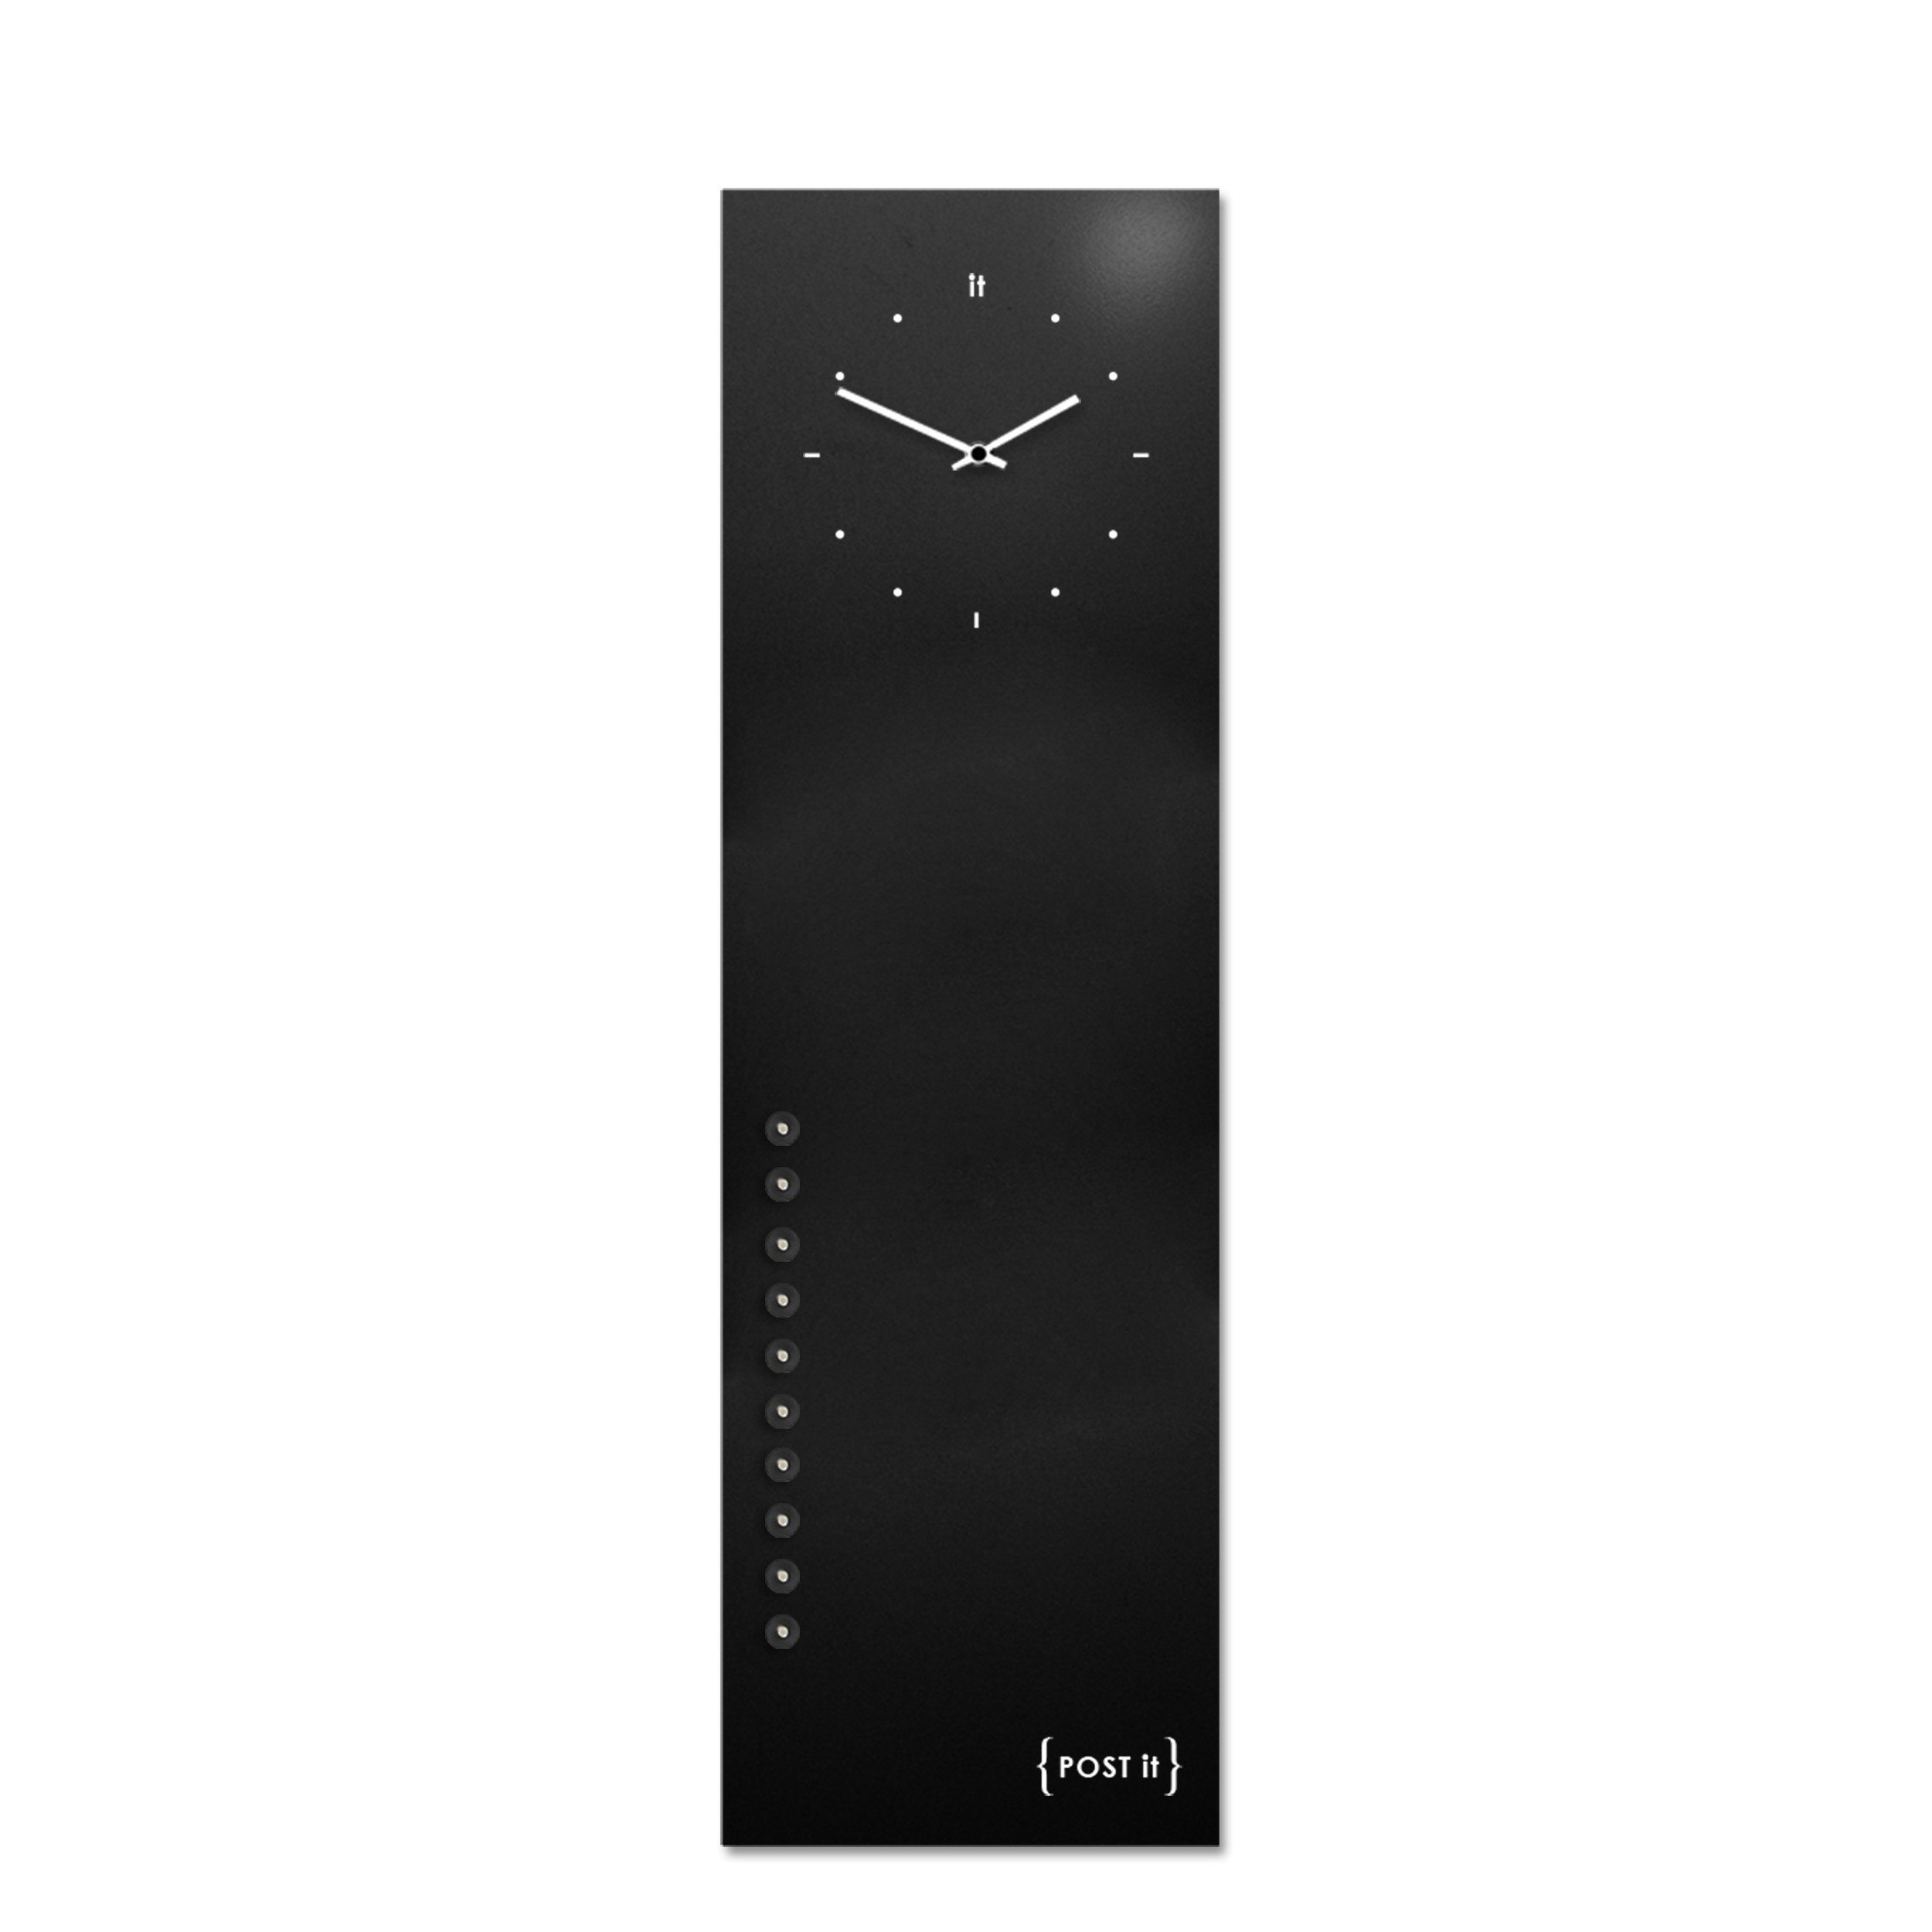 design-clock-magnetic-board-orologio-lavagna-magnetica-post it-black-vertical-magnets